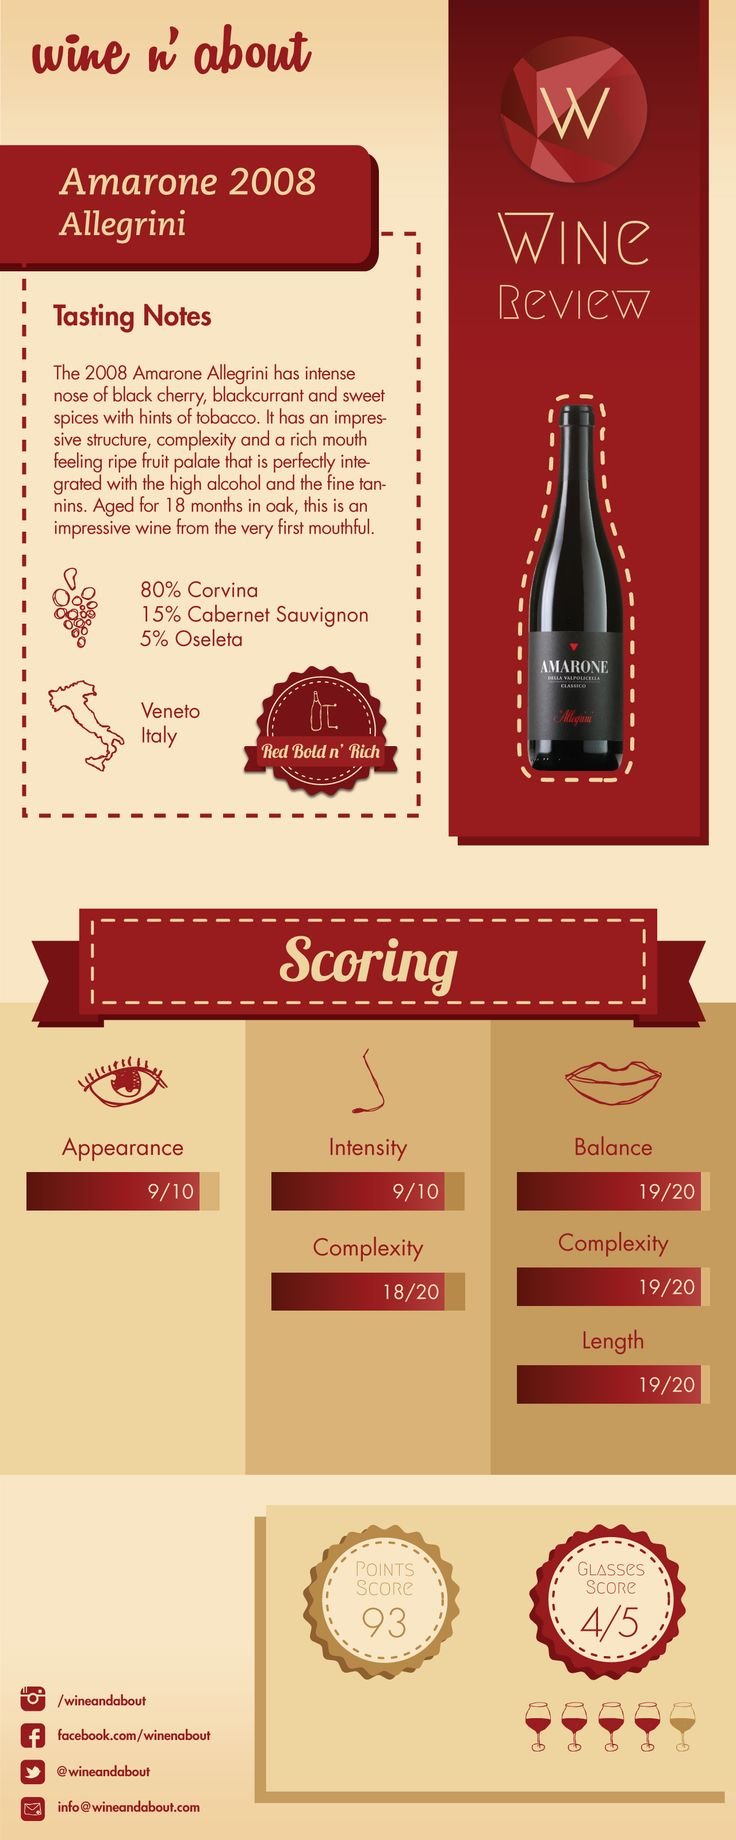 Amarone 2008 Allegrini Is A Wonderful Big N Bold Red Wine With All The Characteristics To Become One Of Your Favorite Wines Check Our Wine Review